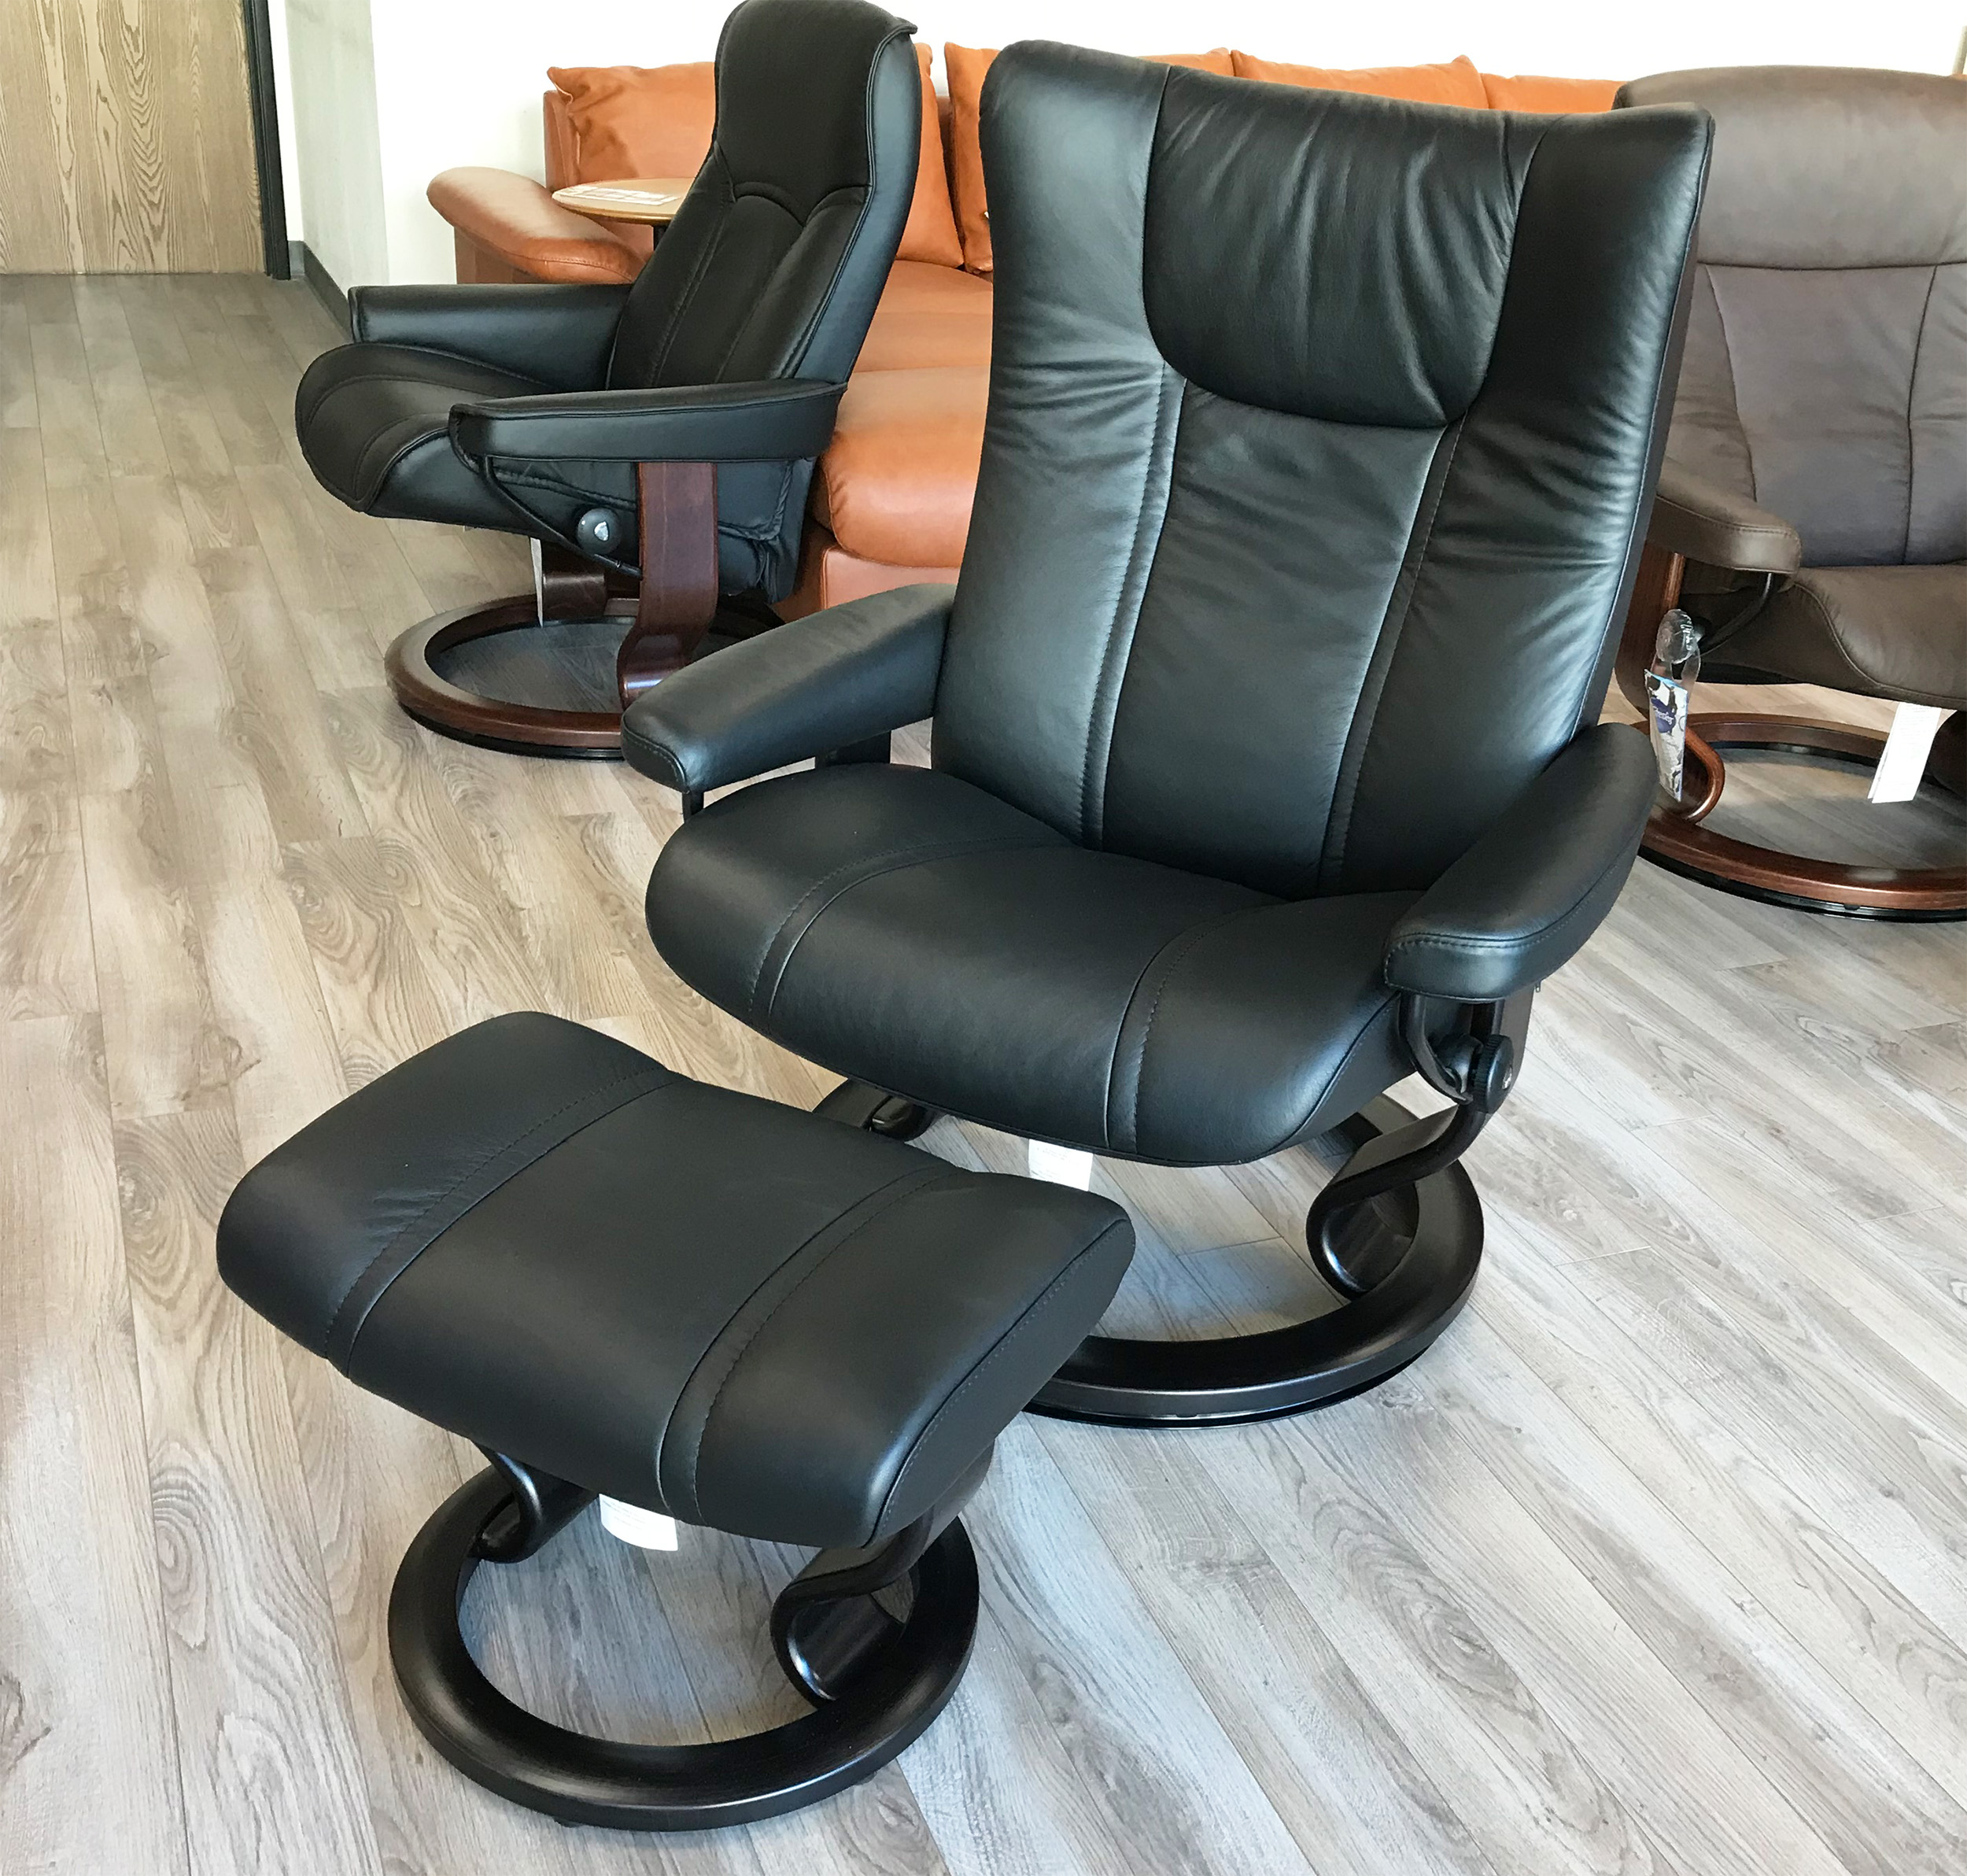 Leather Reclining Chairs Stressless Wing Recliner Chair And Ottoman In Paloma Black Leather By Ekornes